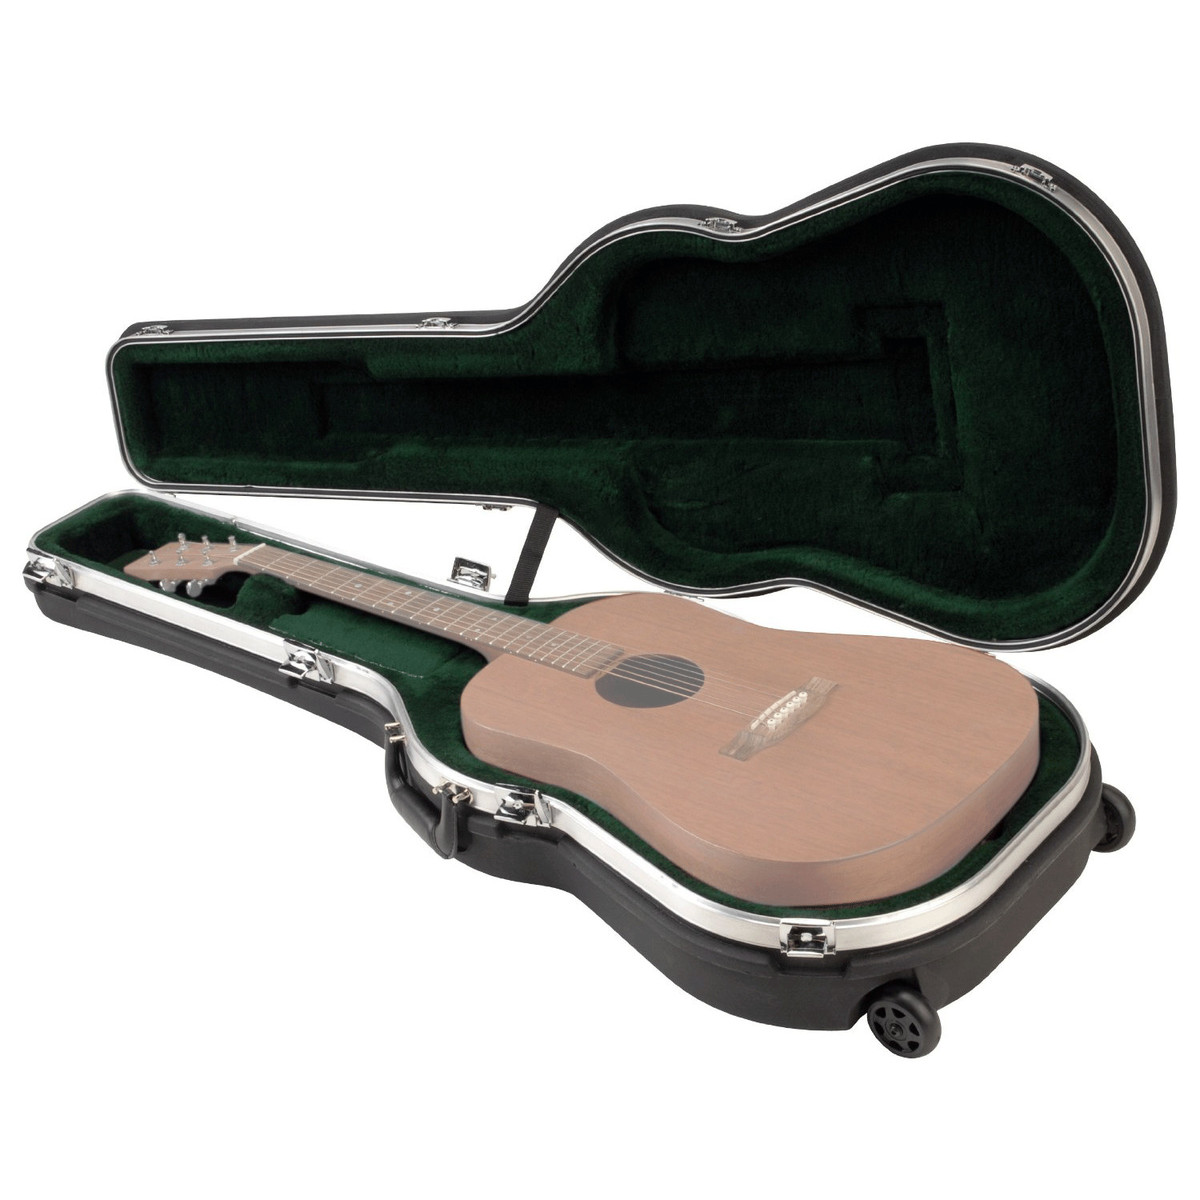 Guitar Cases With Wheels : disc skb roto molded ata acoustic guitar hardshell case with wheels at ~ Russianpoet.info Haus und Dekorationen